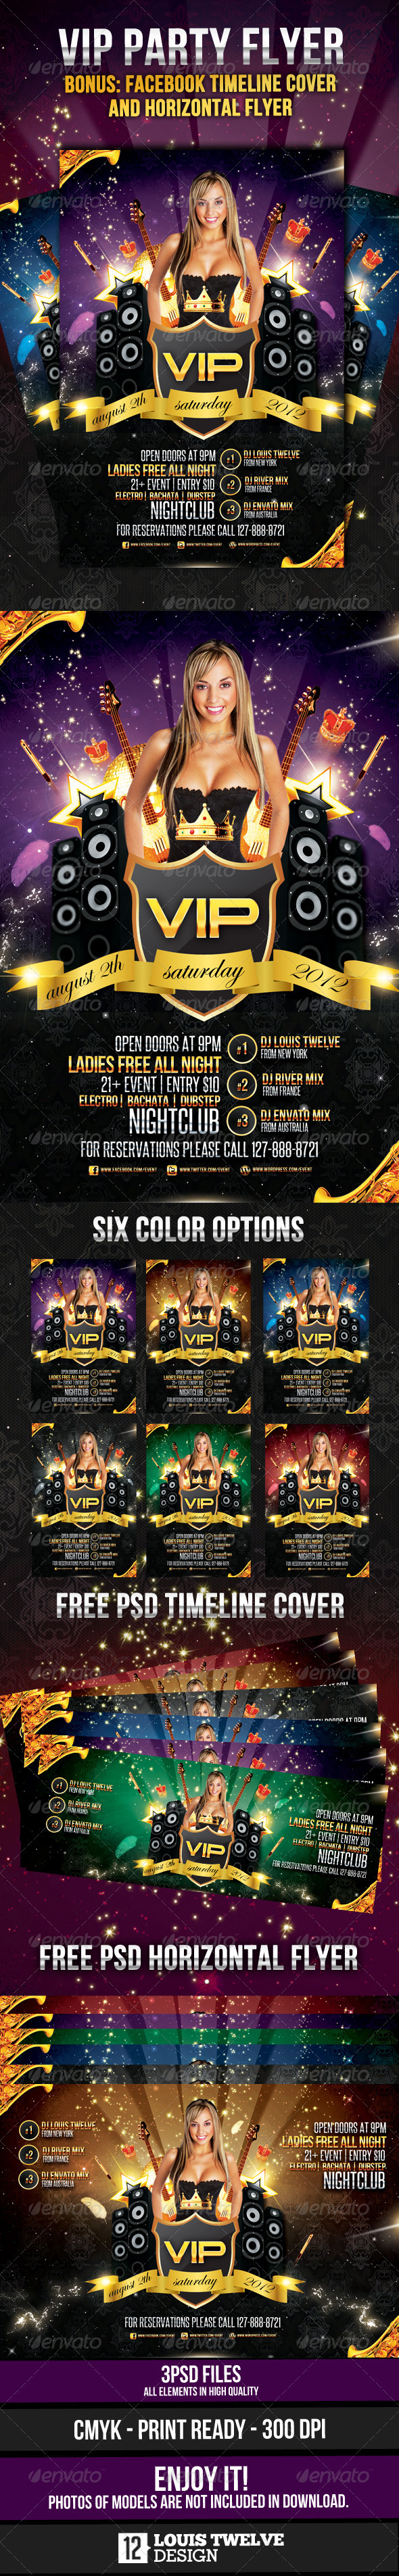 VIP Party - Flyer Vertical & Horizontal + Timeline - Clubs & Parties Events